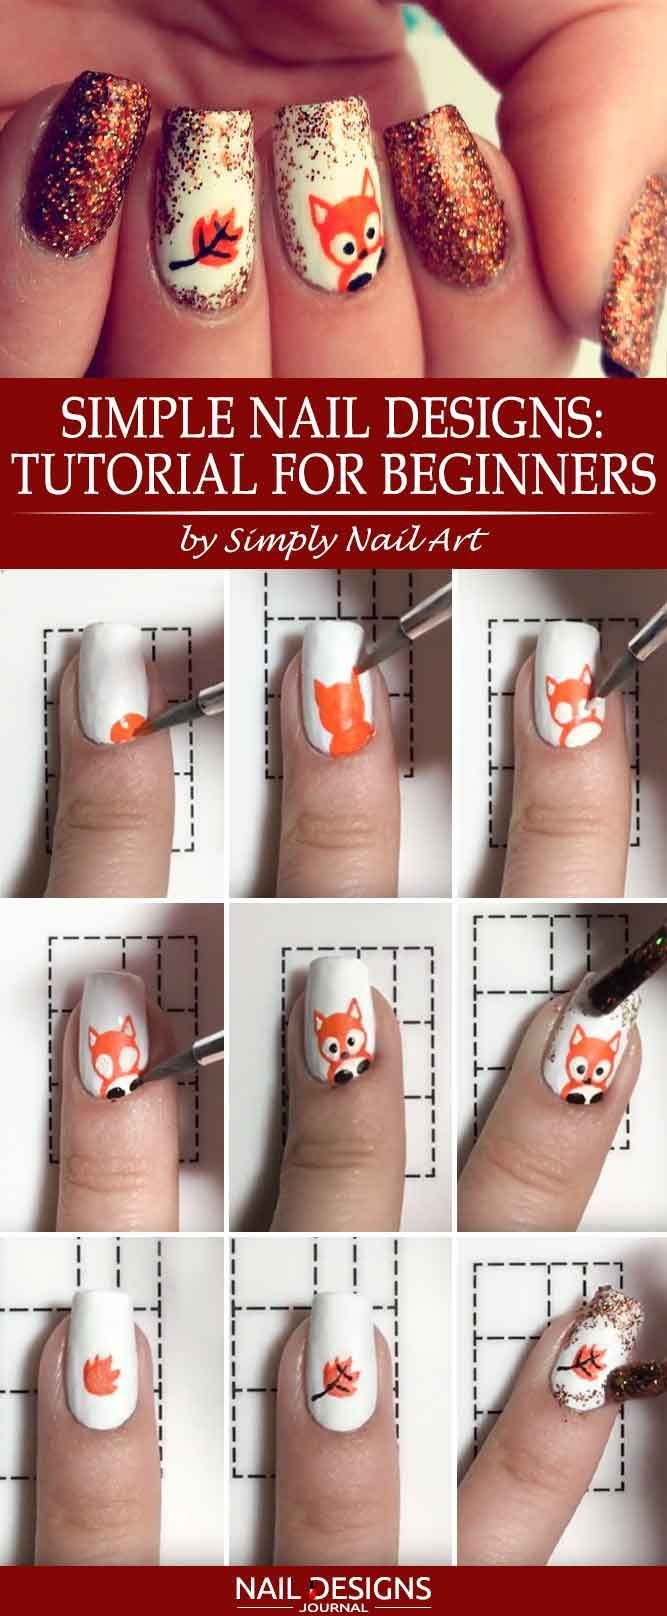 Foxy Nails: The Hottest Trend of This Fall | Autumn nails, Nail ...